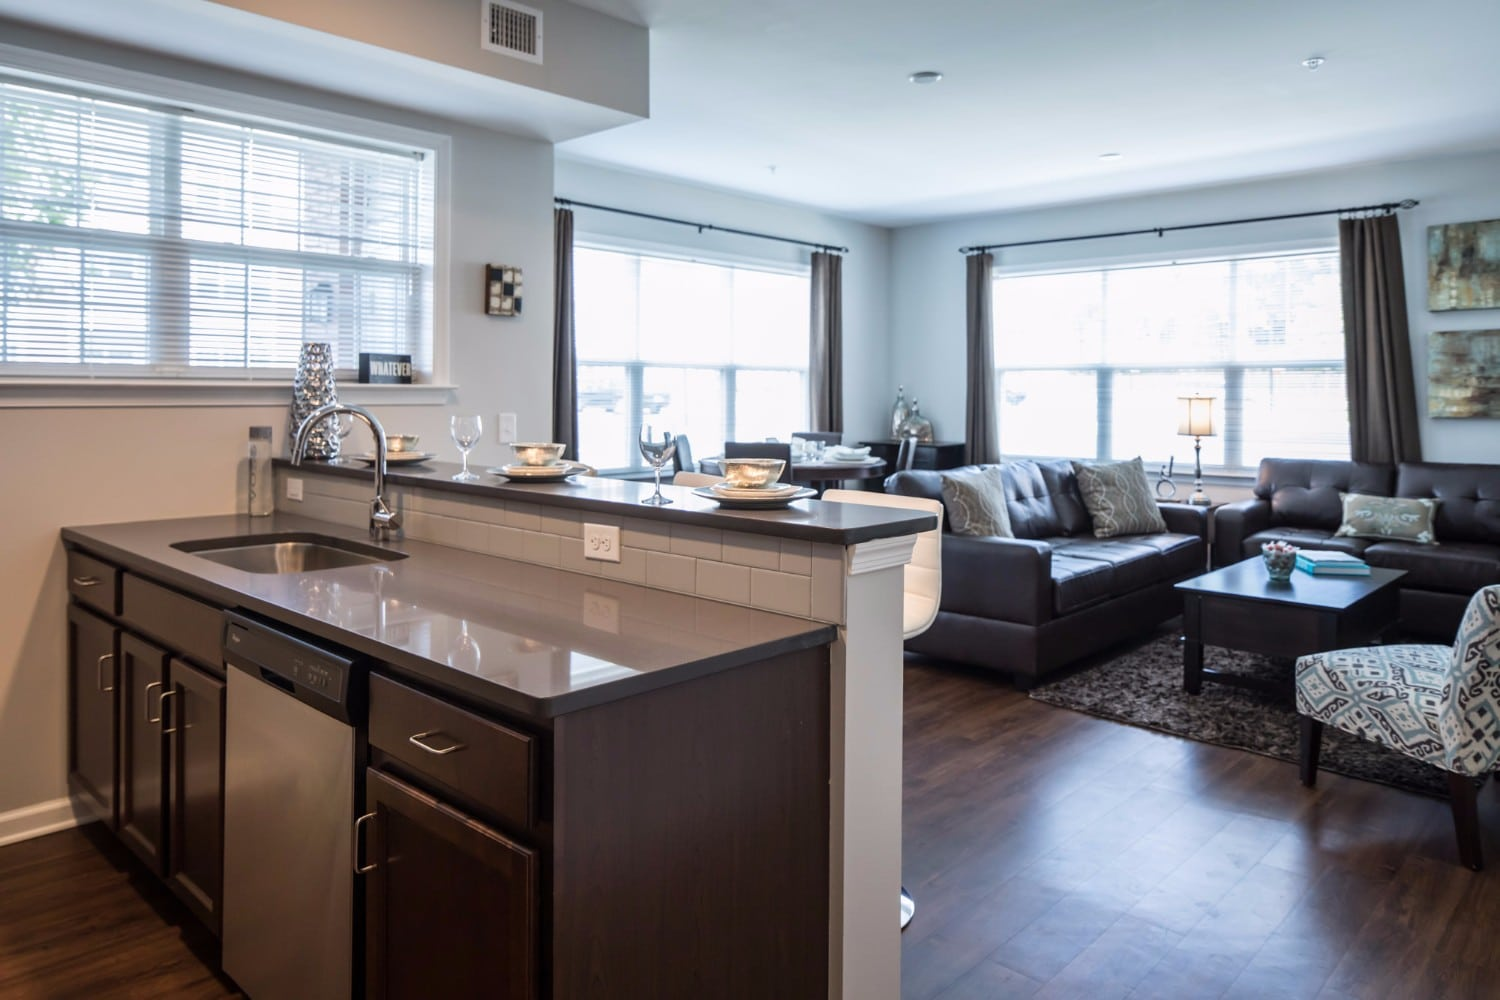 Apartment in Warminster PA | Photos of Jacksonville Station